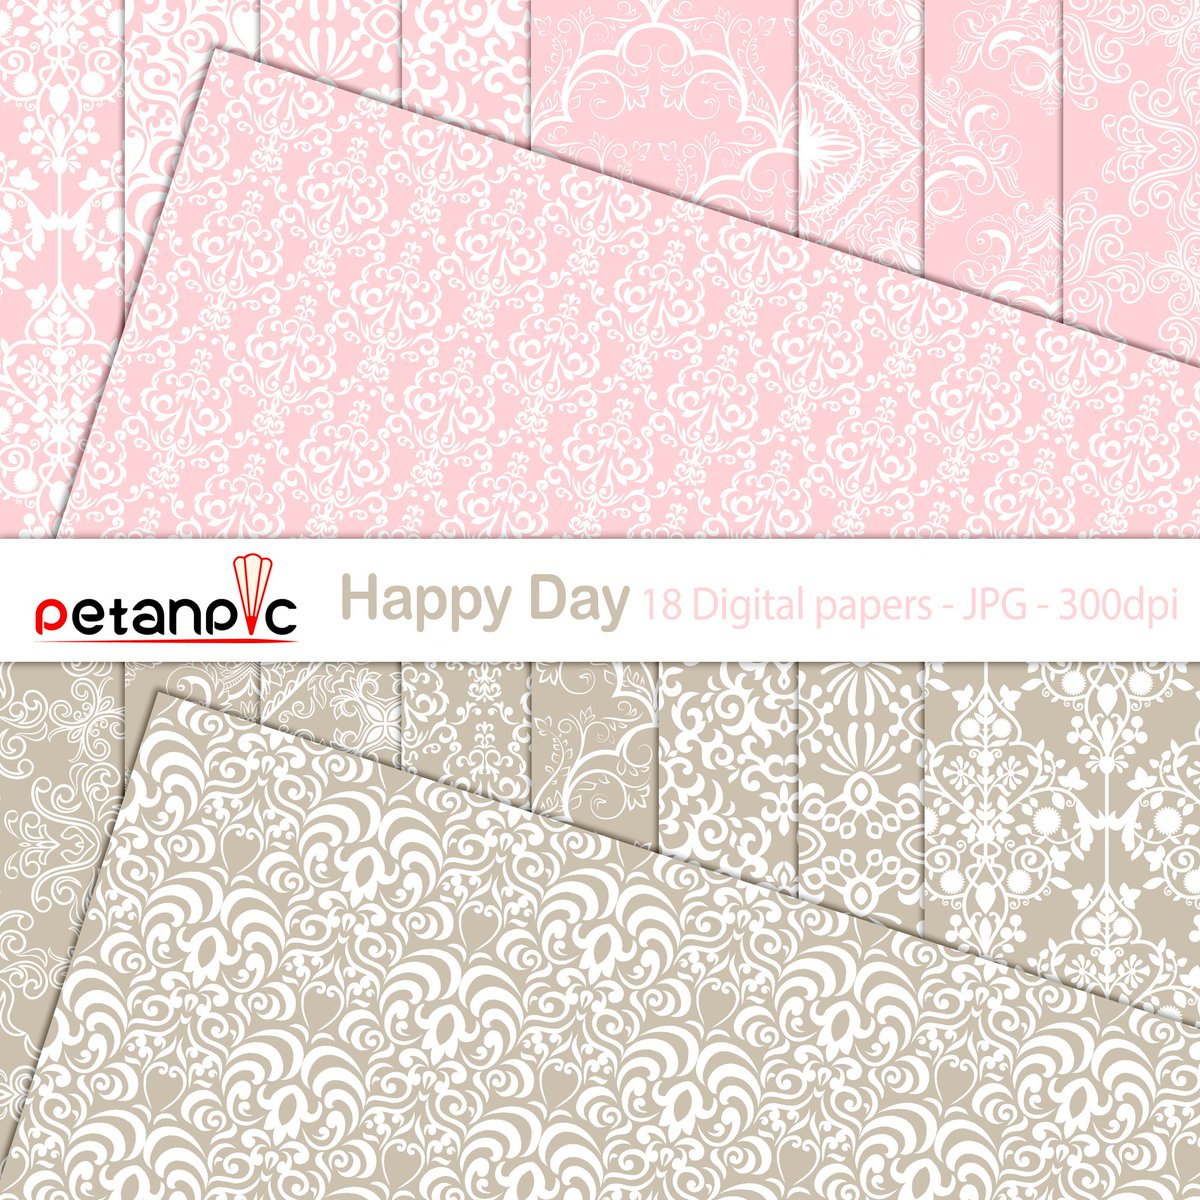 """This Happy Day Set includes 3 ZIP files high-quality Pink and Brown (Gold) digital papers: ~ 18 Digital Papers - JPG format - high resolution - 300 dpi - size is 12""""x12""""(3600px x 3600px) ~ All elements are high-quality files, suitable for print or digital projects."""